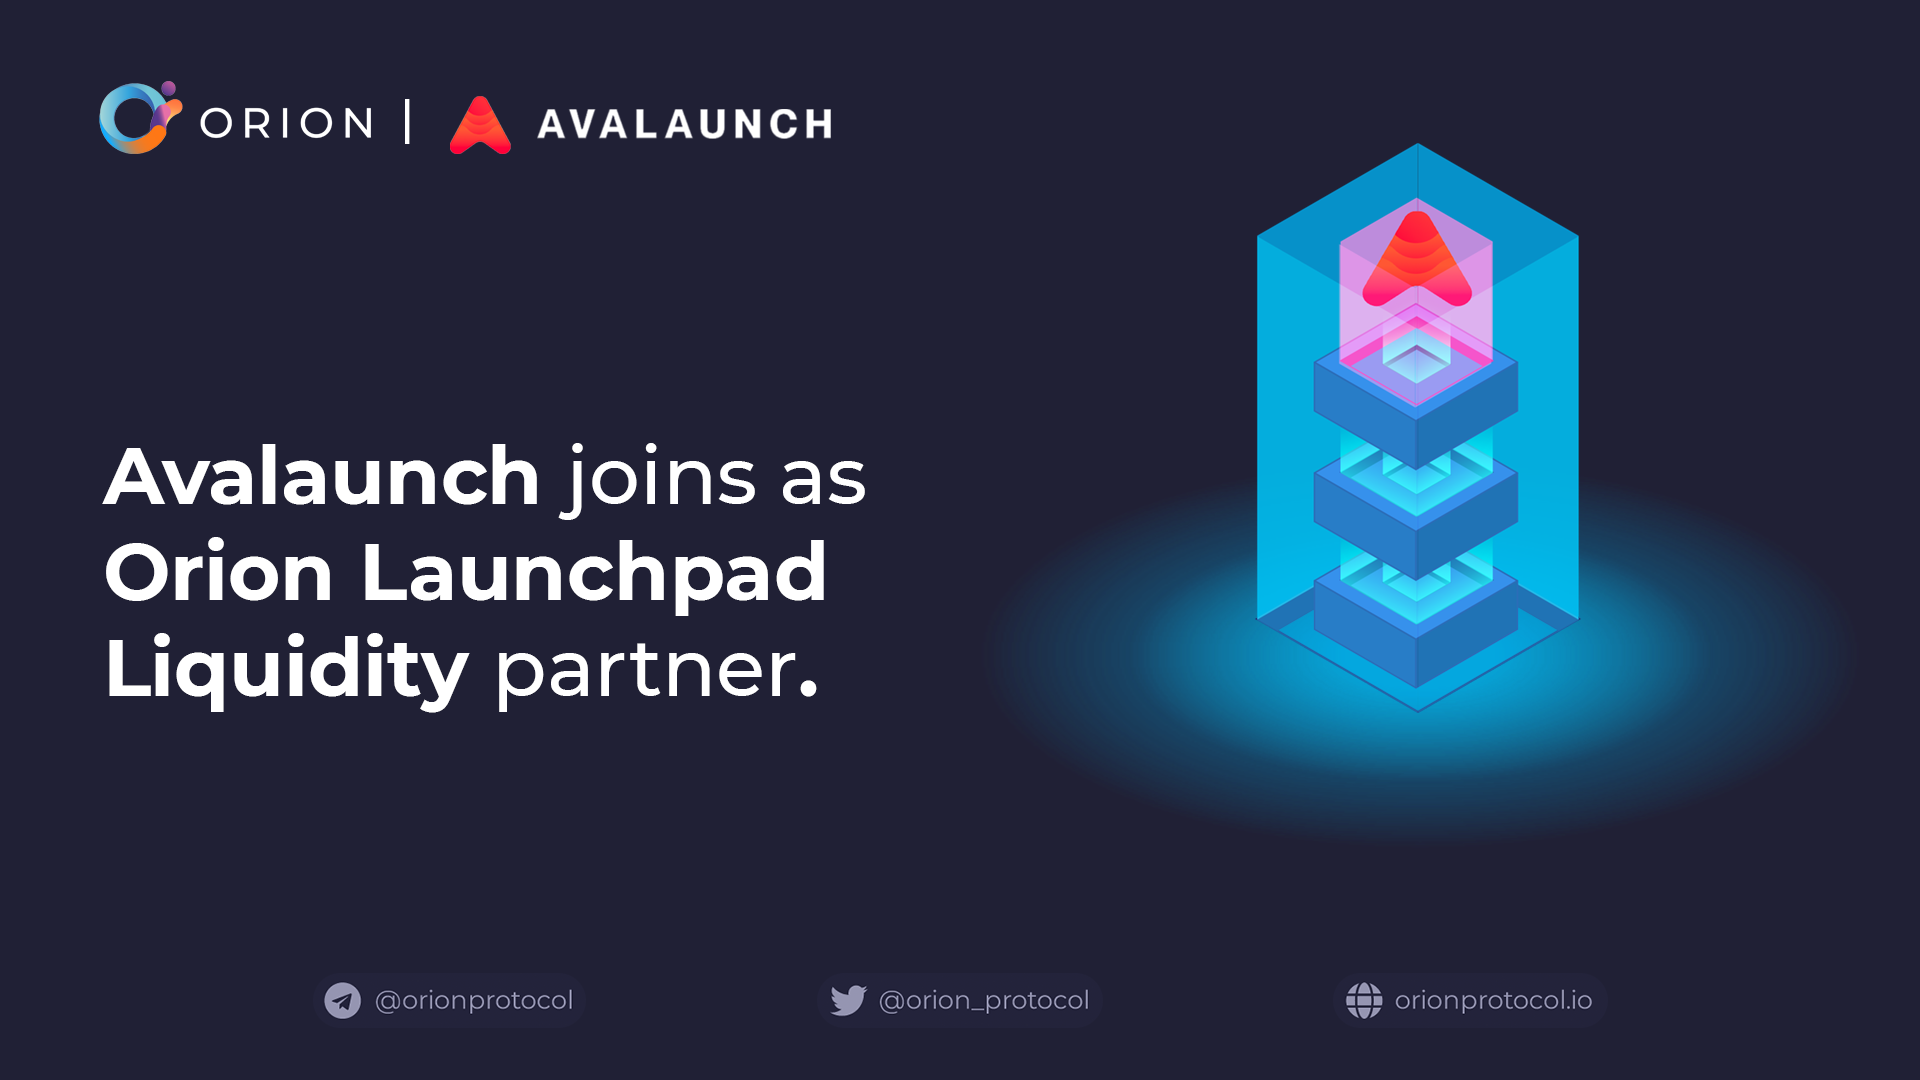 Avalaunch joins as Launchpad Liquidity partner